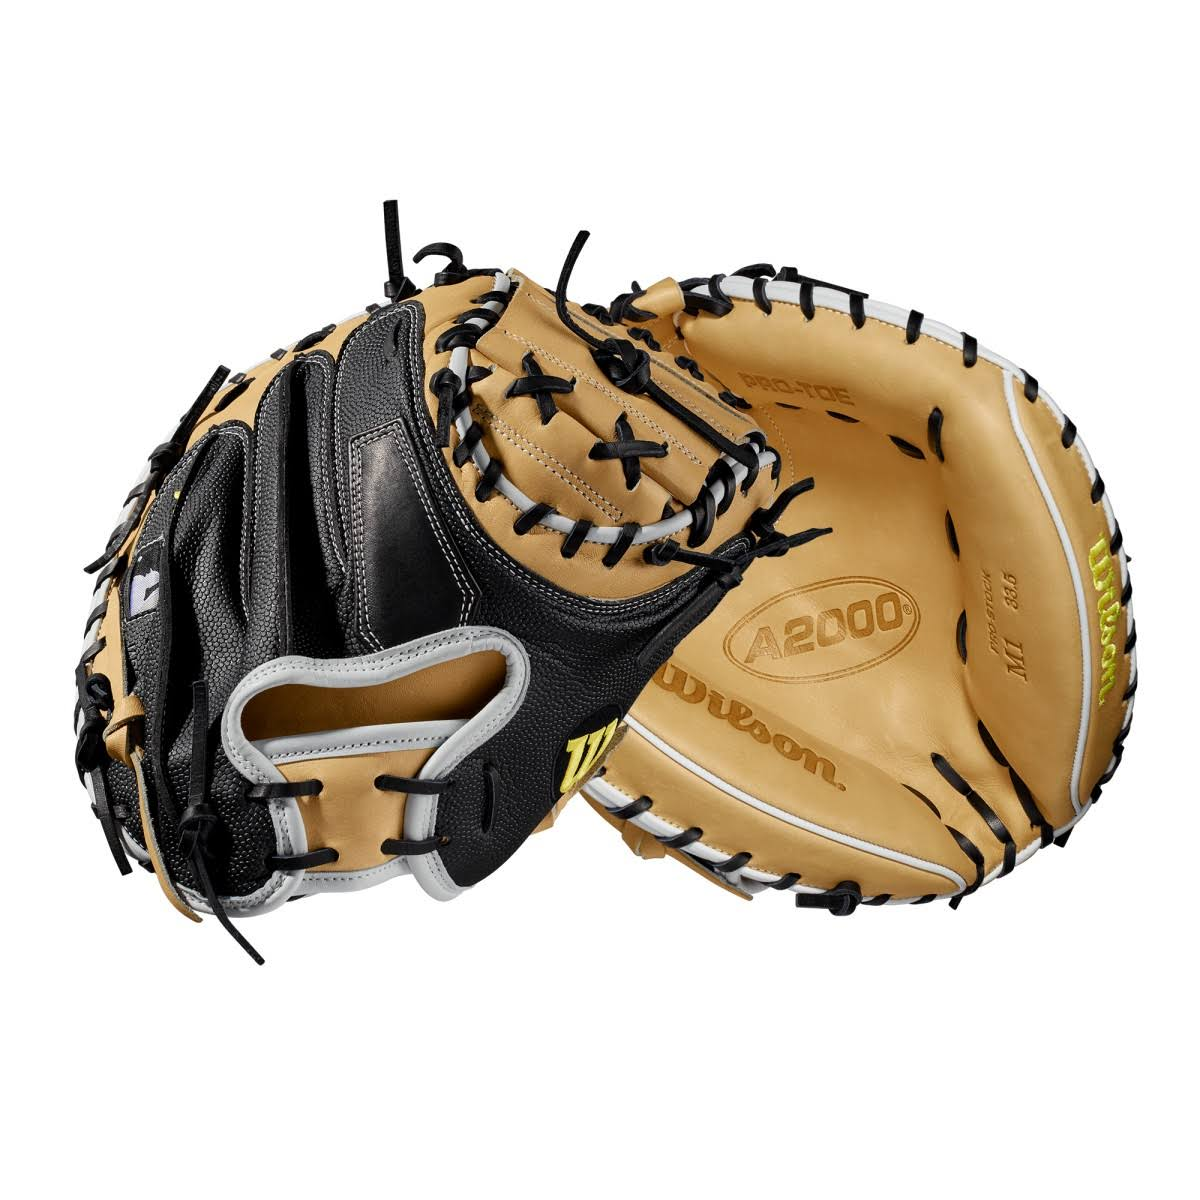 "Wilson A2000 M1 SuperSkin 33.5"" Baseball Catcher's Mitt"